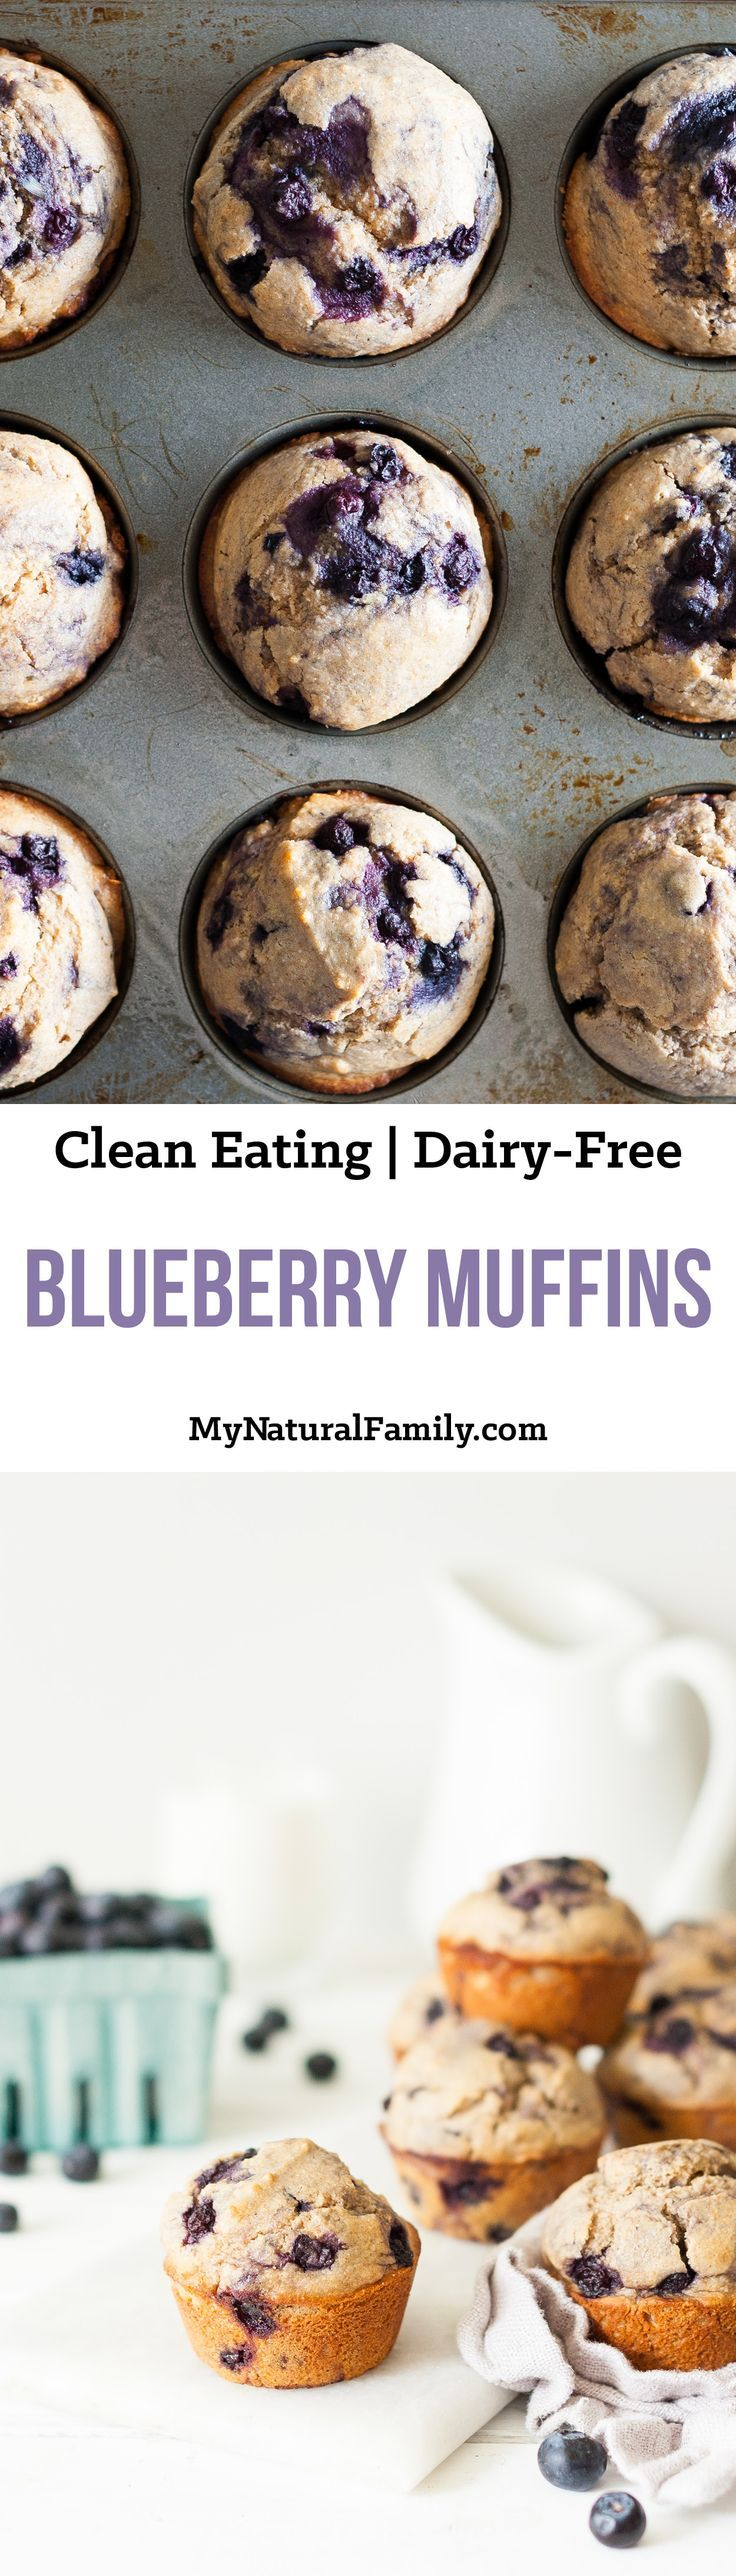 Blueberry Muffins Recipe {Clean Eating, Dairy-Free} - these are made with whole wheat flour and honey, so you can feel good eating them.